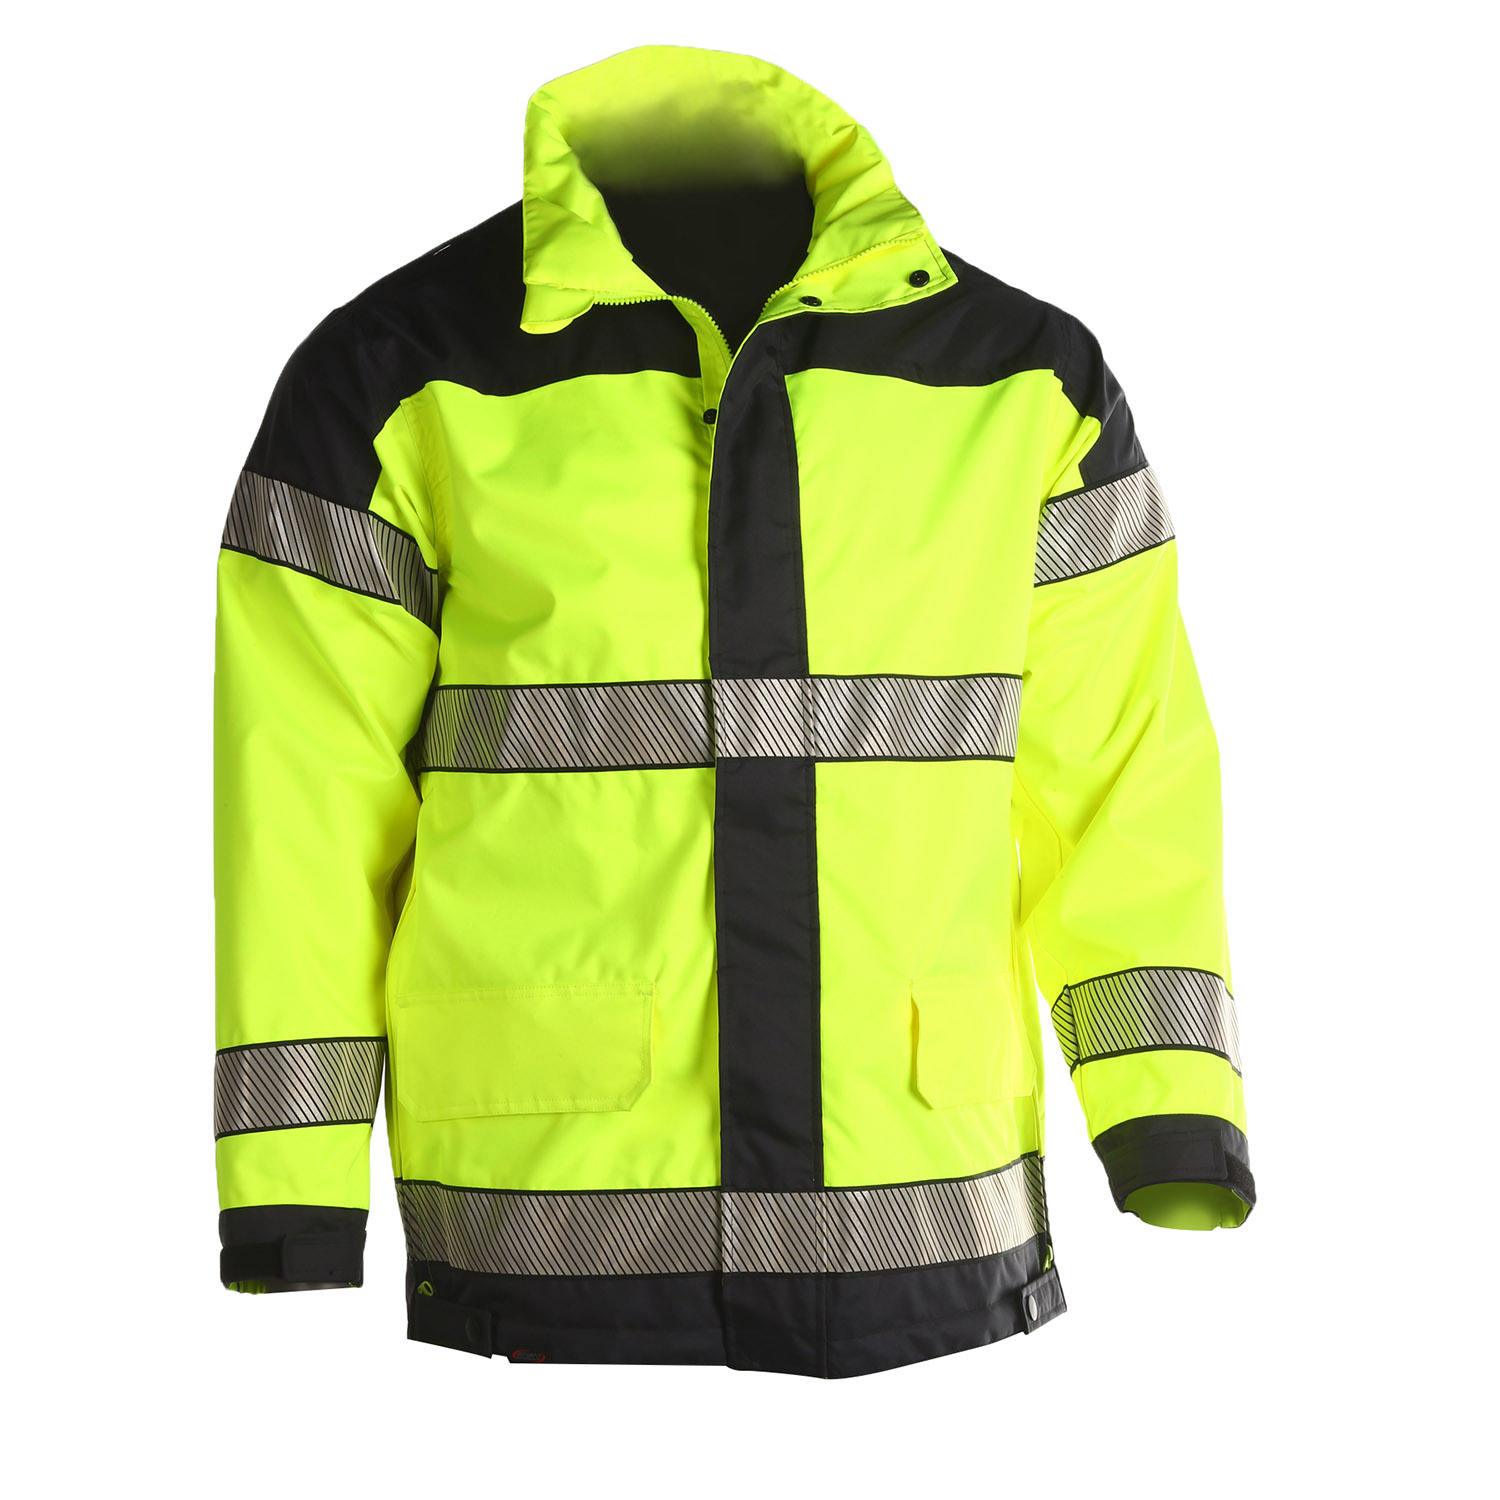 Elbeco Shield Hi-Visibility Parka with Performance Softshell